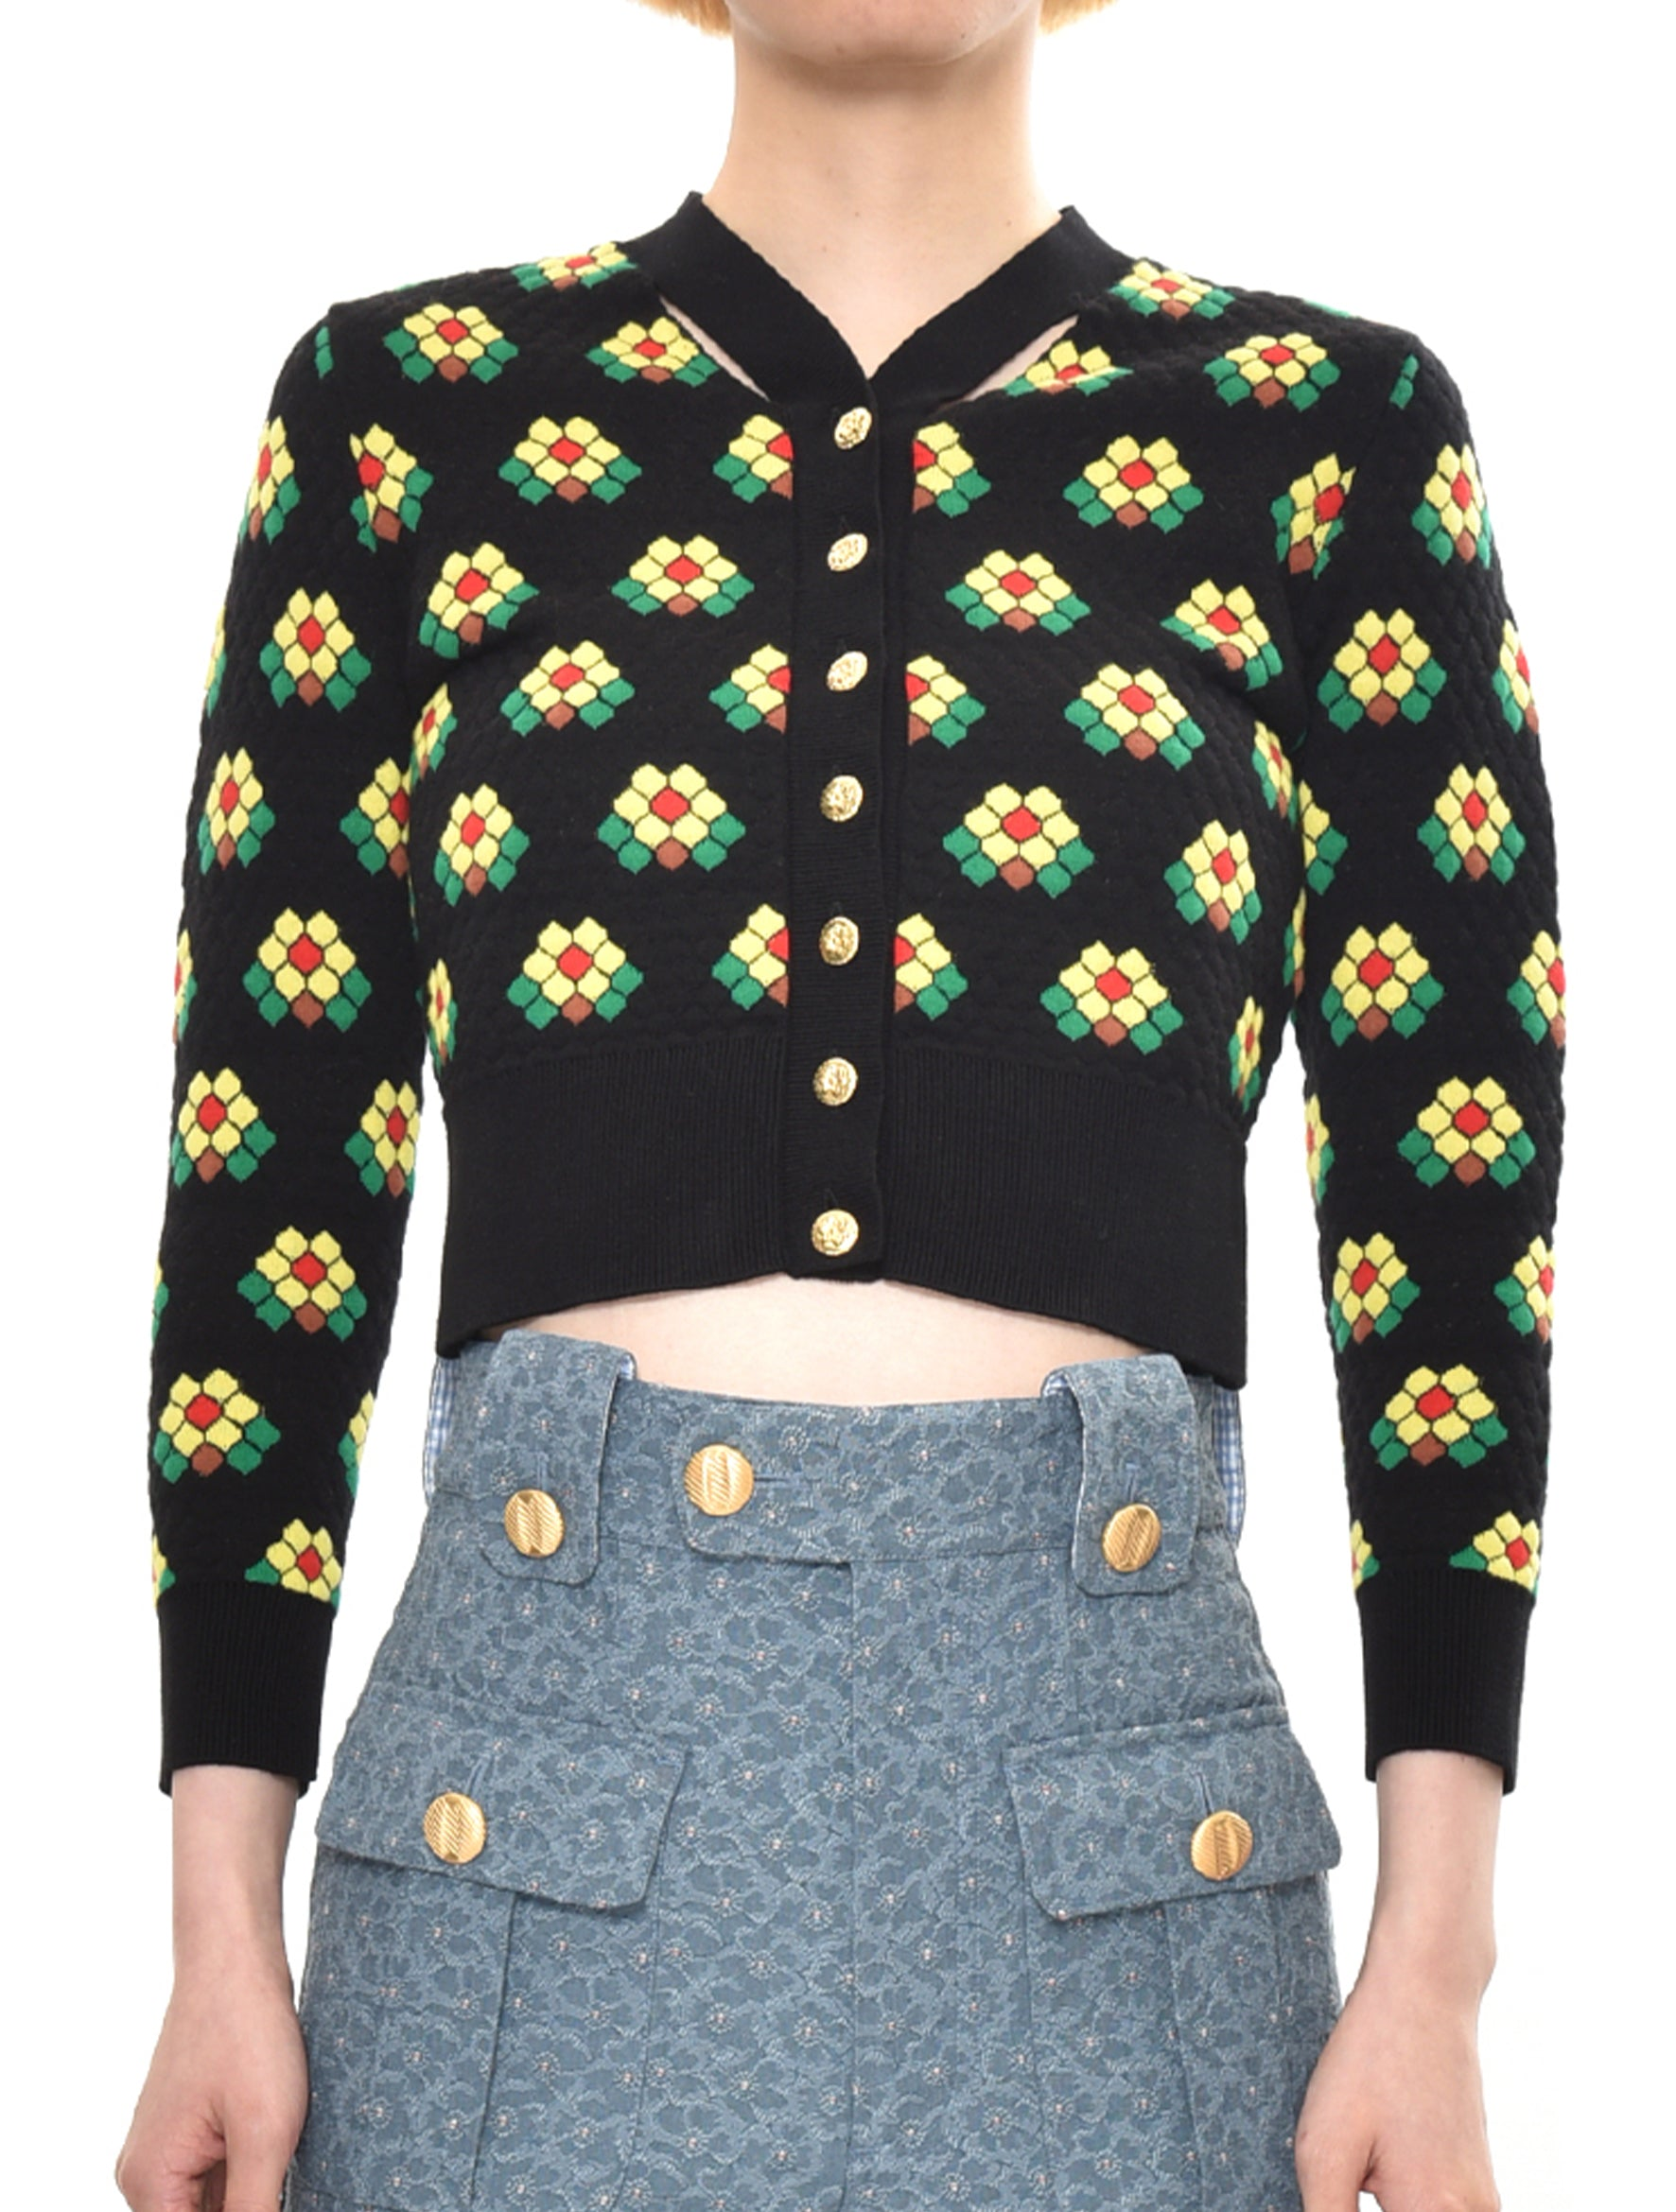 WC Floral Tiles Cardigan